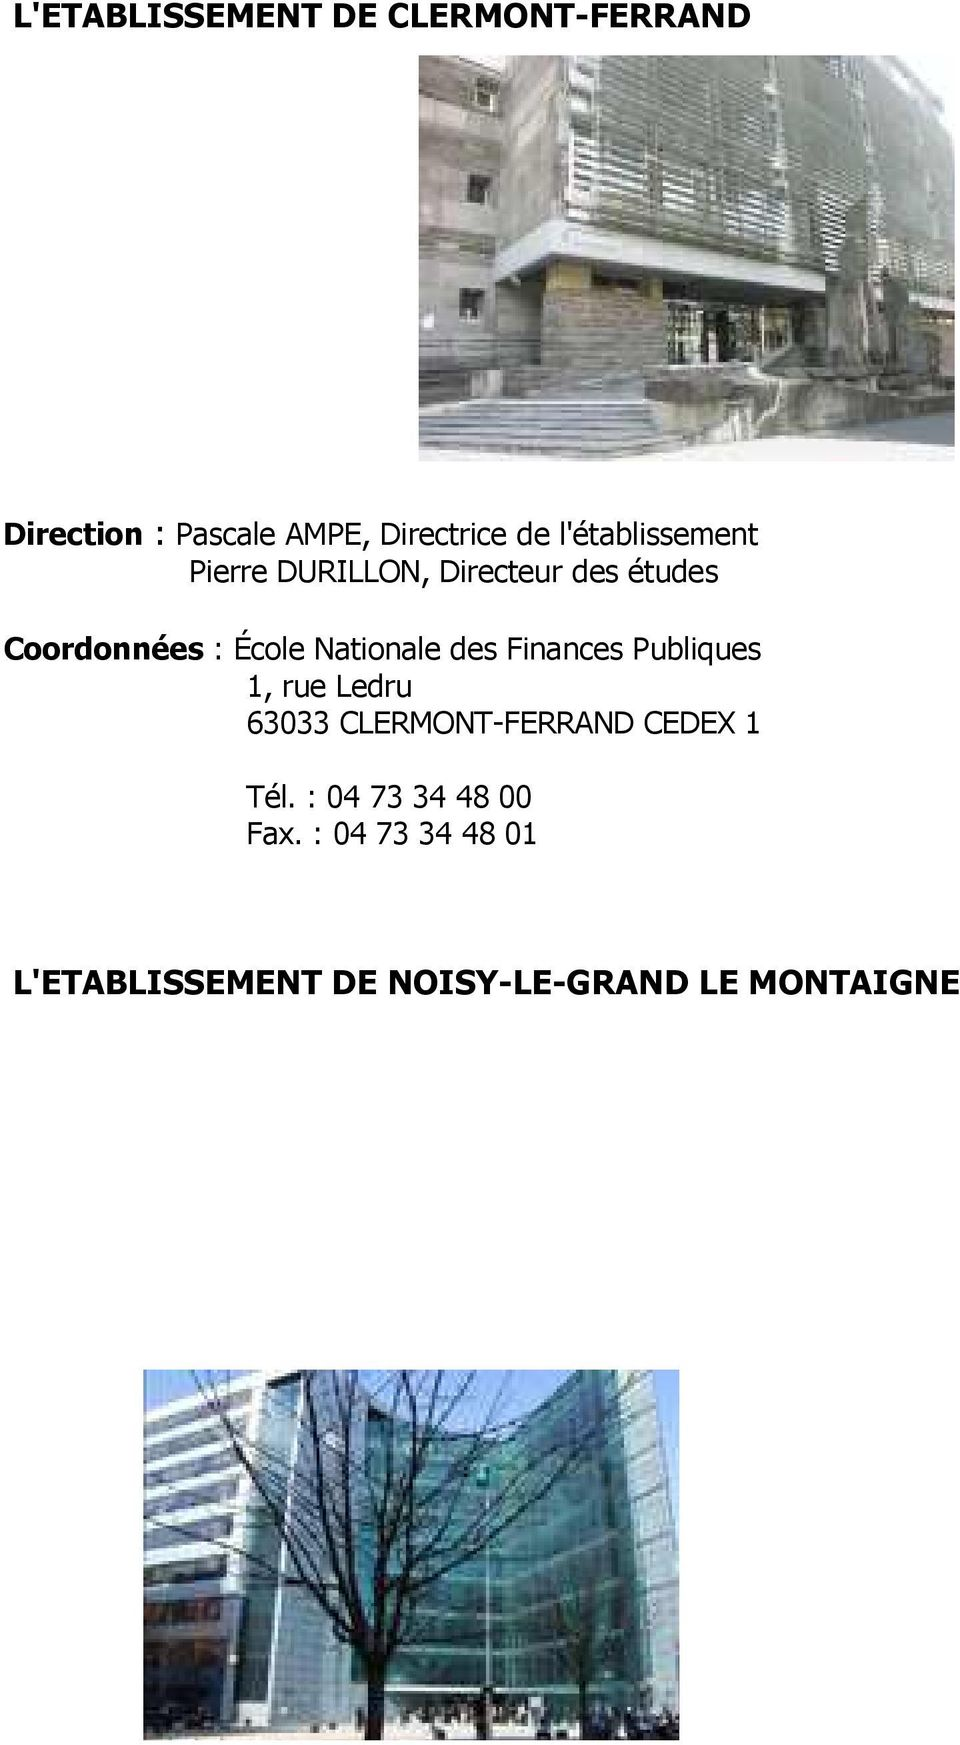 Nationale des Finances Publiques 1, rue Ledru 63033 CLERMONT-FERRAND CEDEX 1